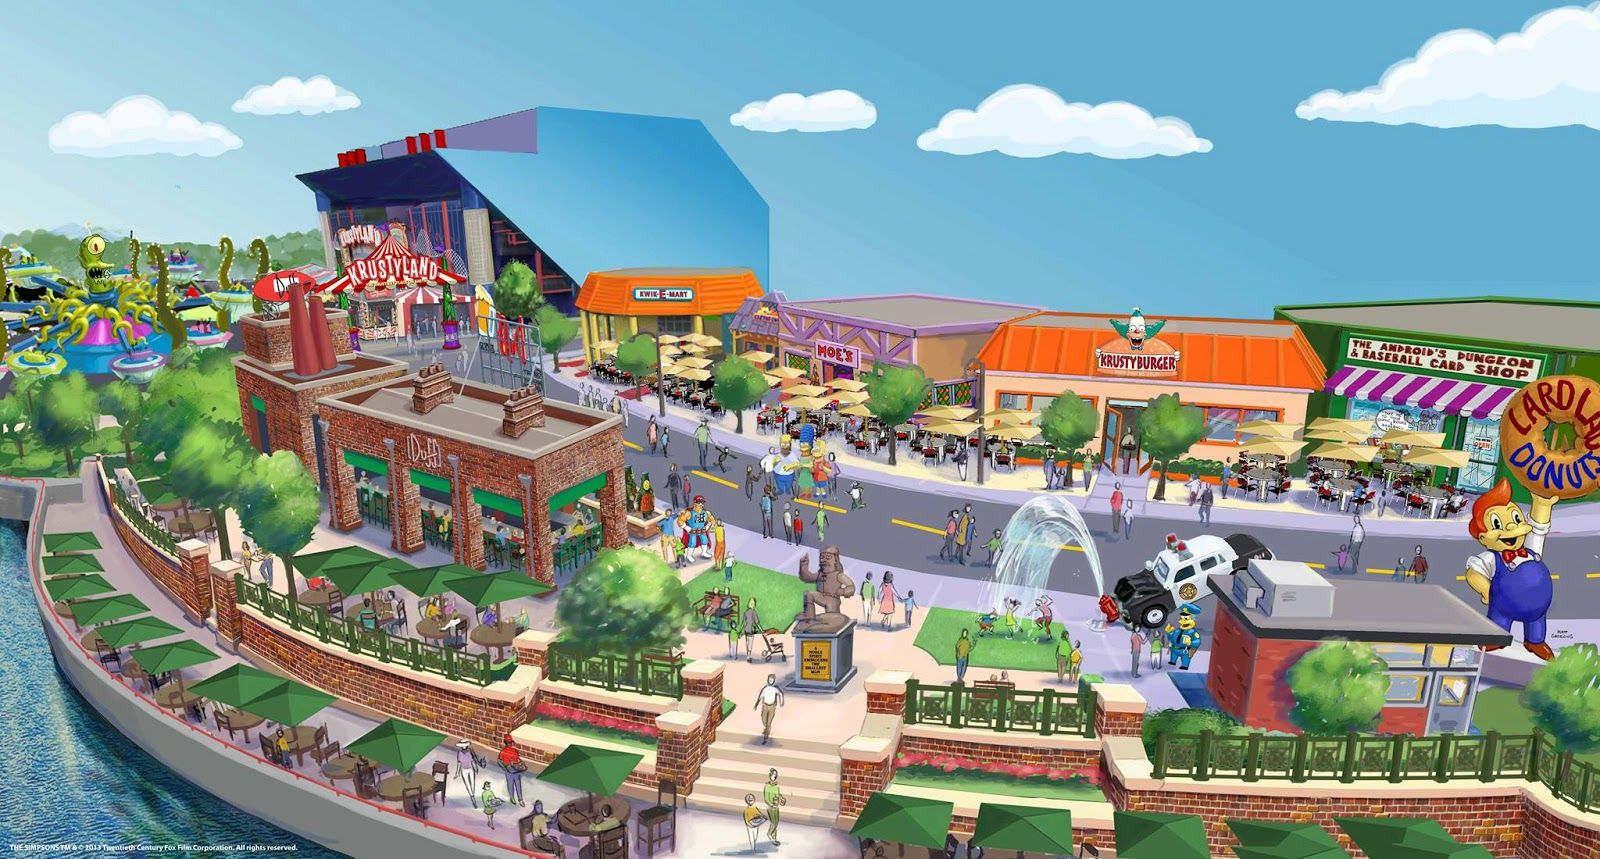 tamu maps with Simpsons Ride Springfield Universal Studios on Index together with Maps also Largest Volcano also Earth 20at 20night in addition 1554wrecks Map.